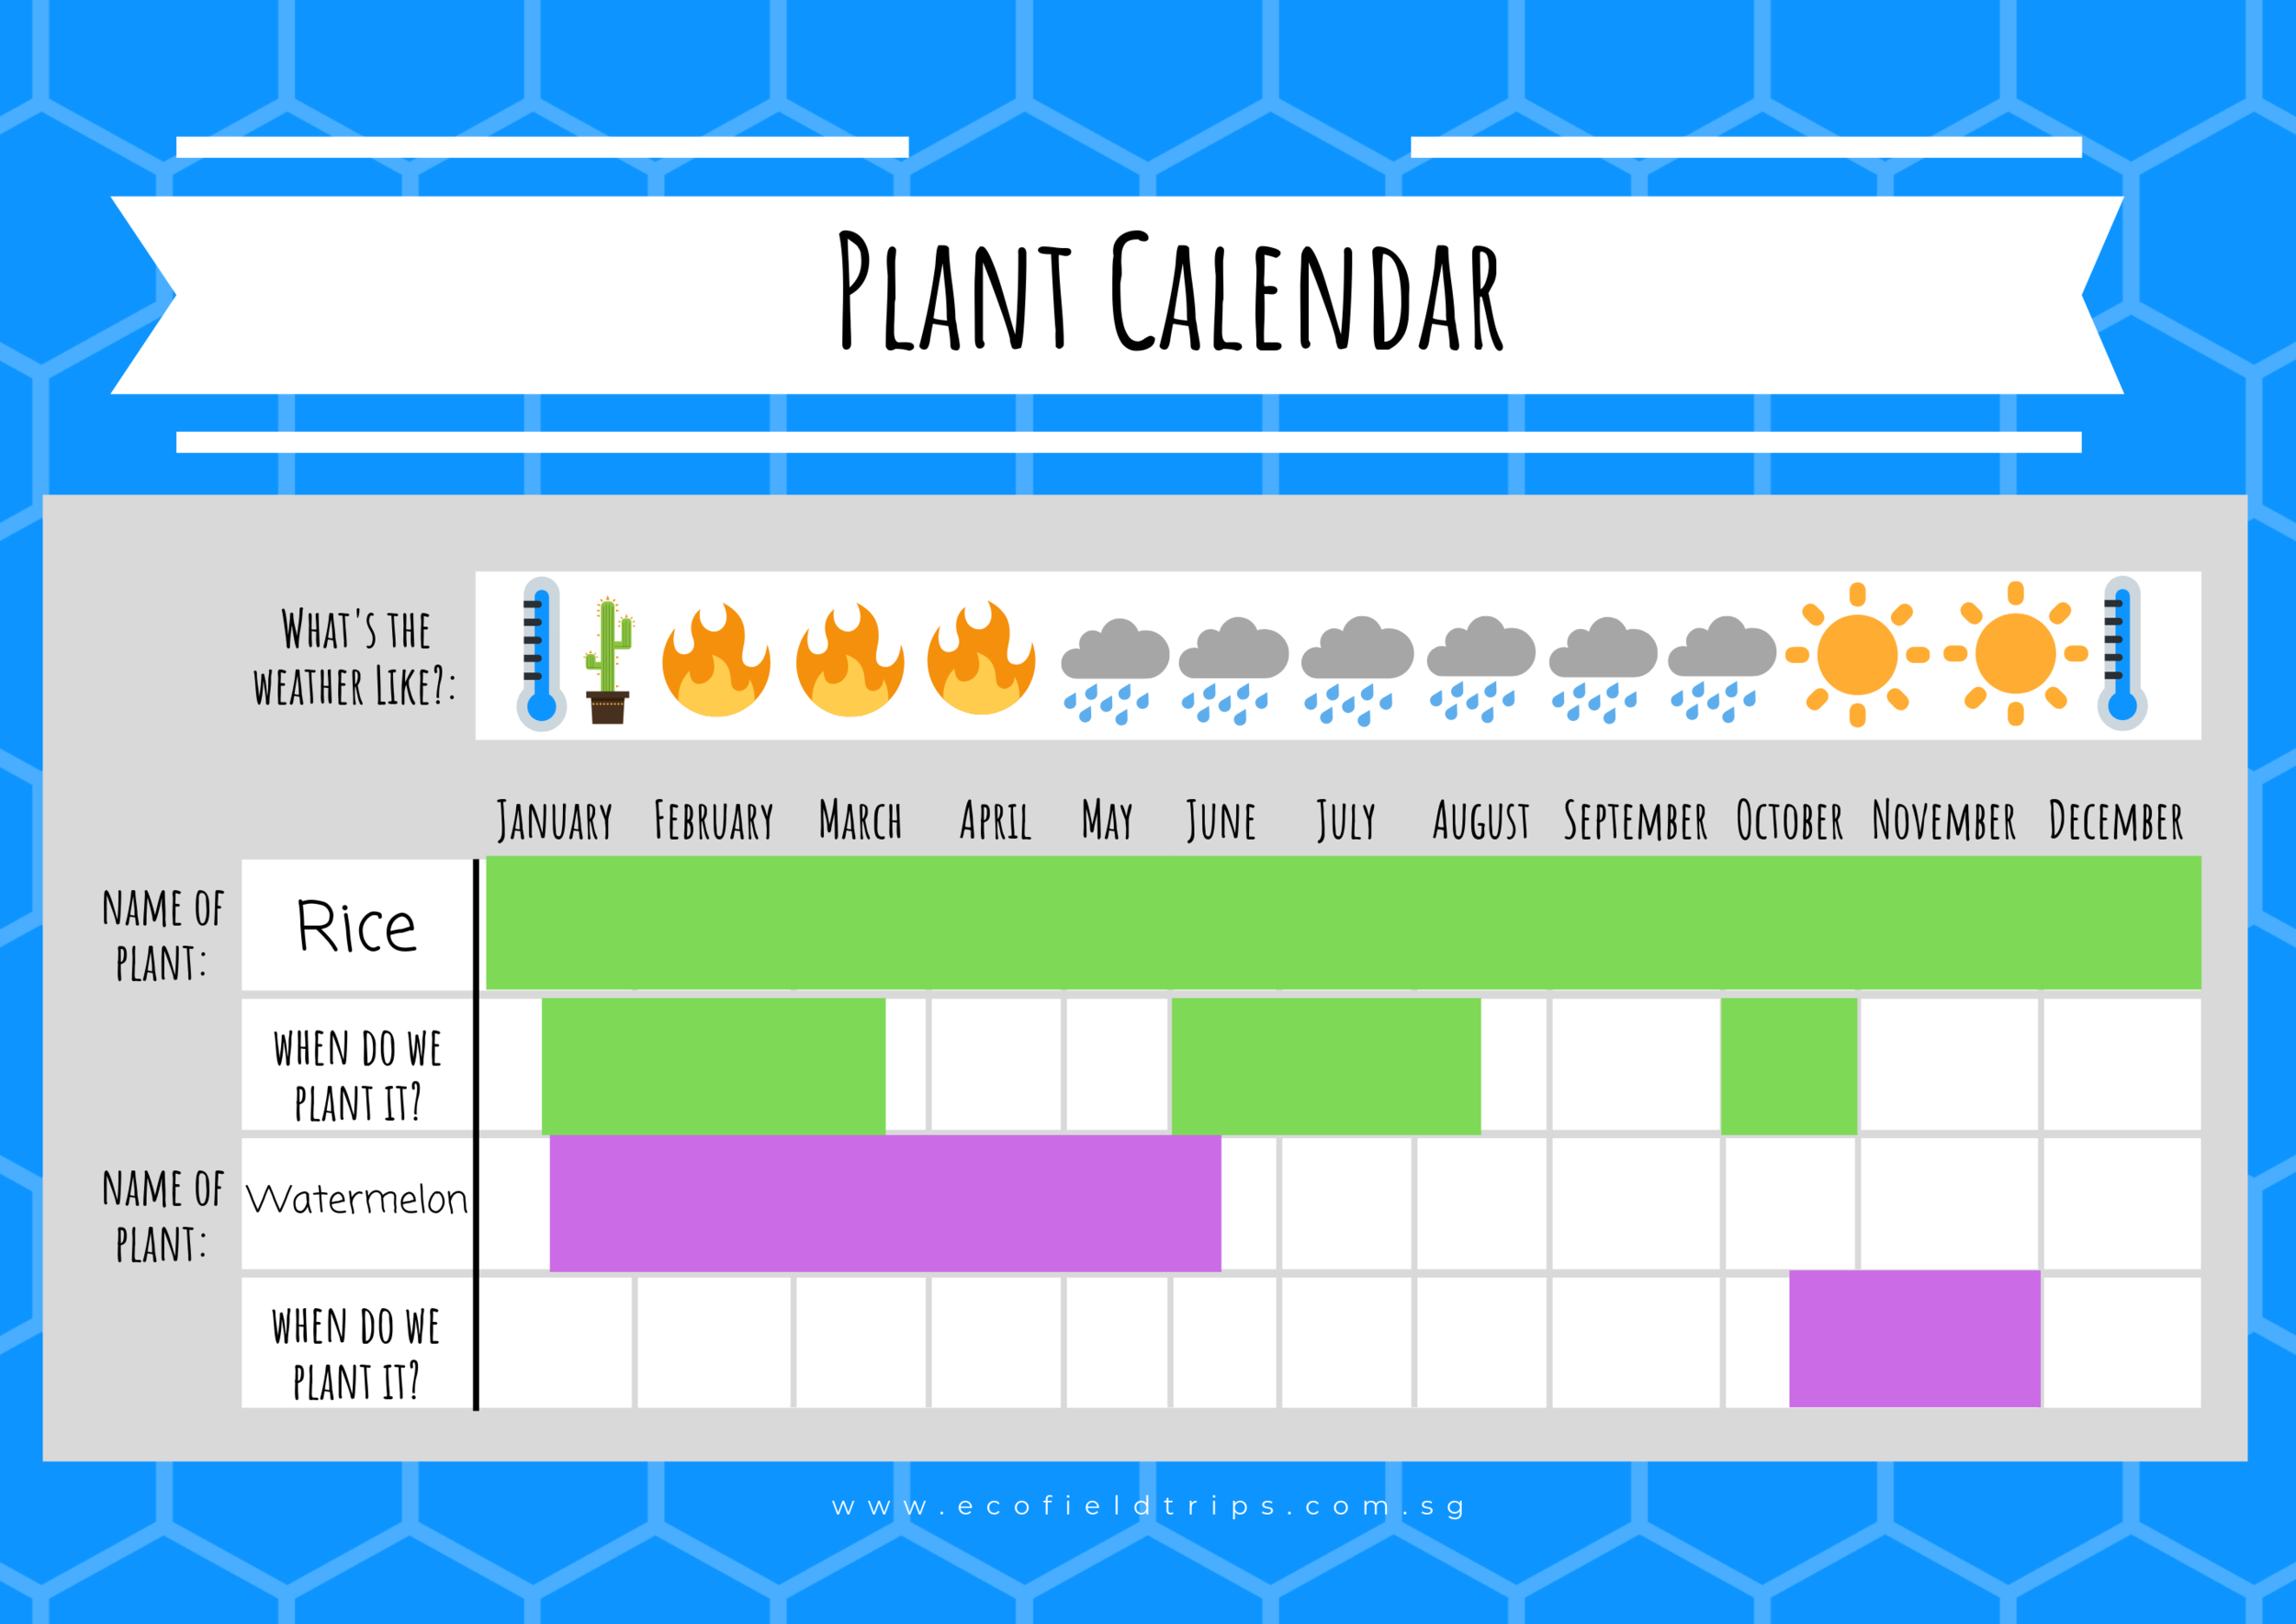 A completed calendar might look something like this…